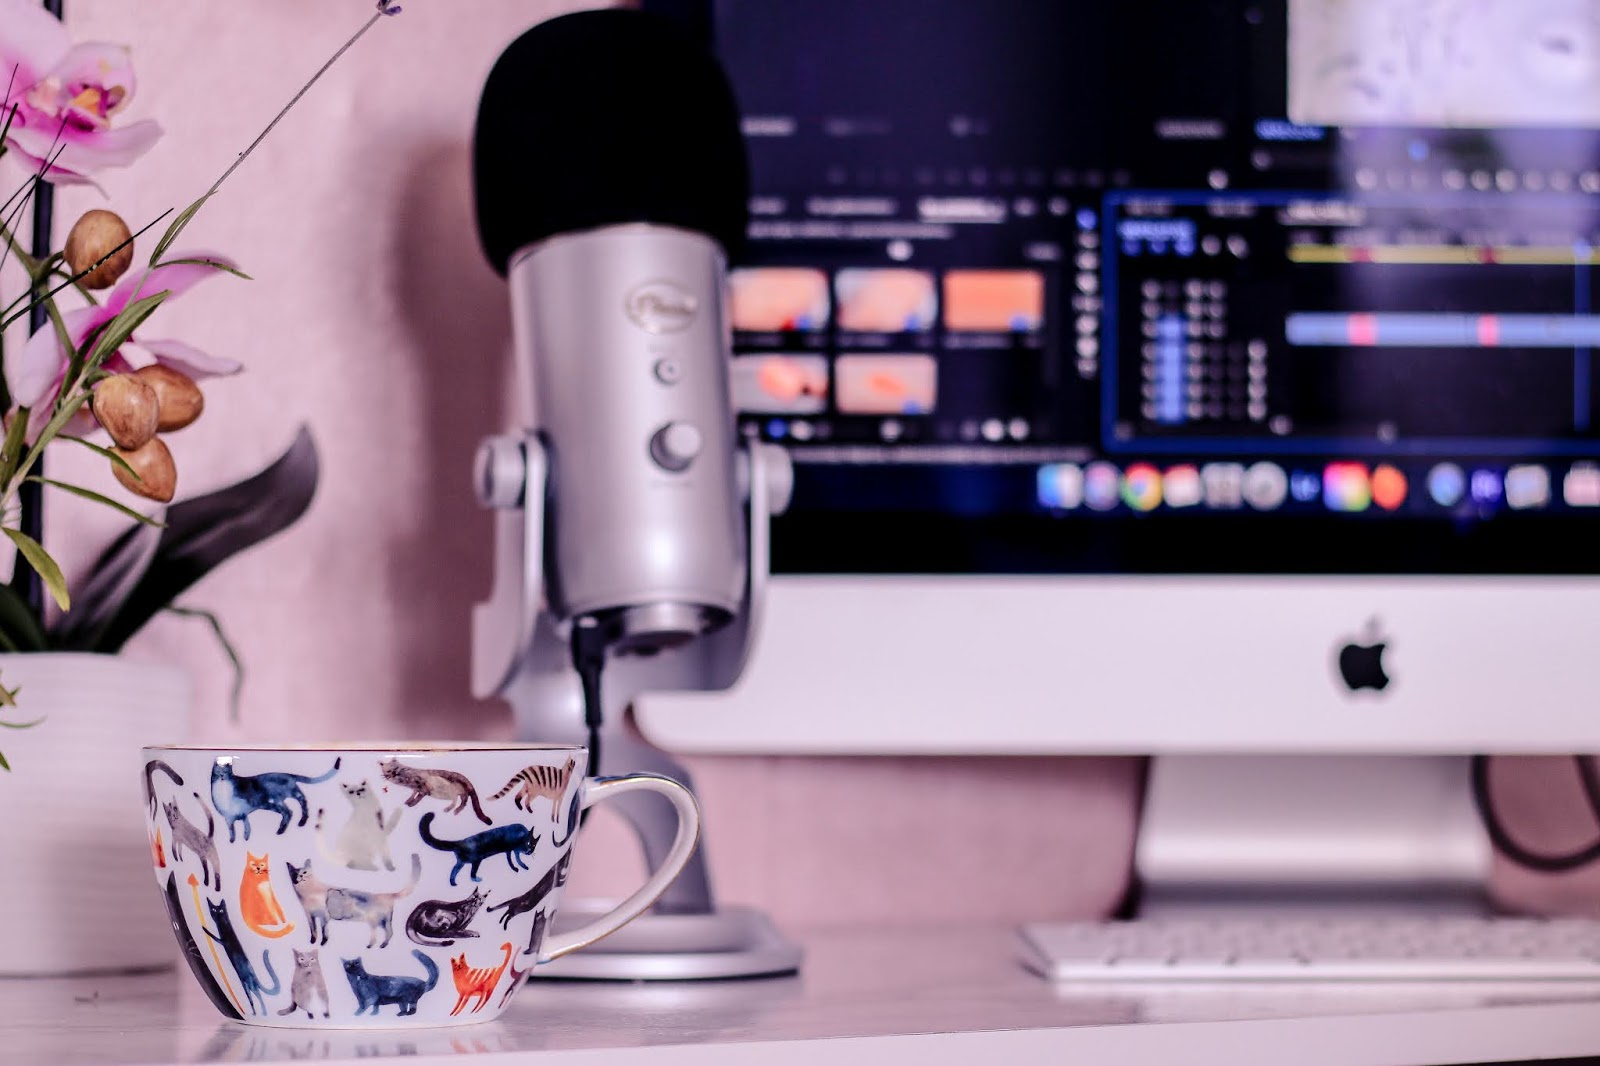 Close up photo of a white mug with ginger and black cats on it, on top of a white marble top desk with an iMac and Blue Yetti microphone in the background